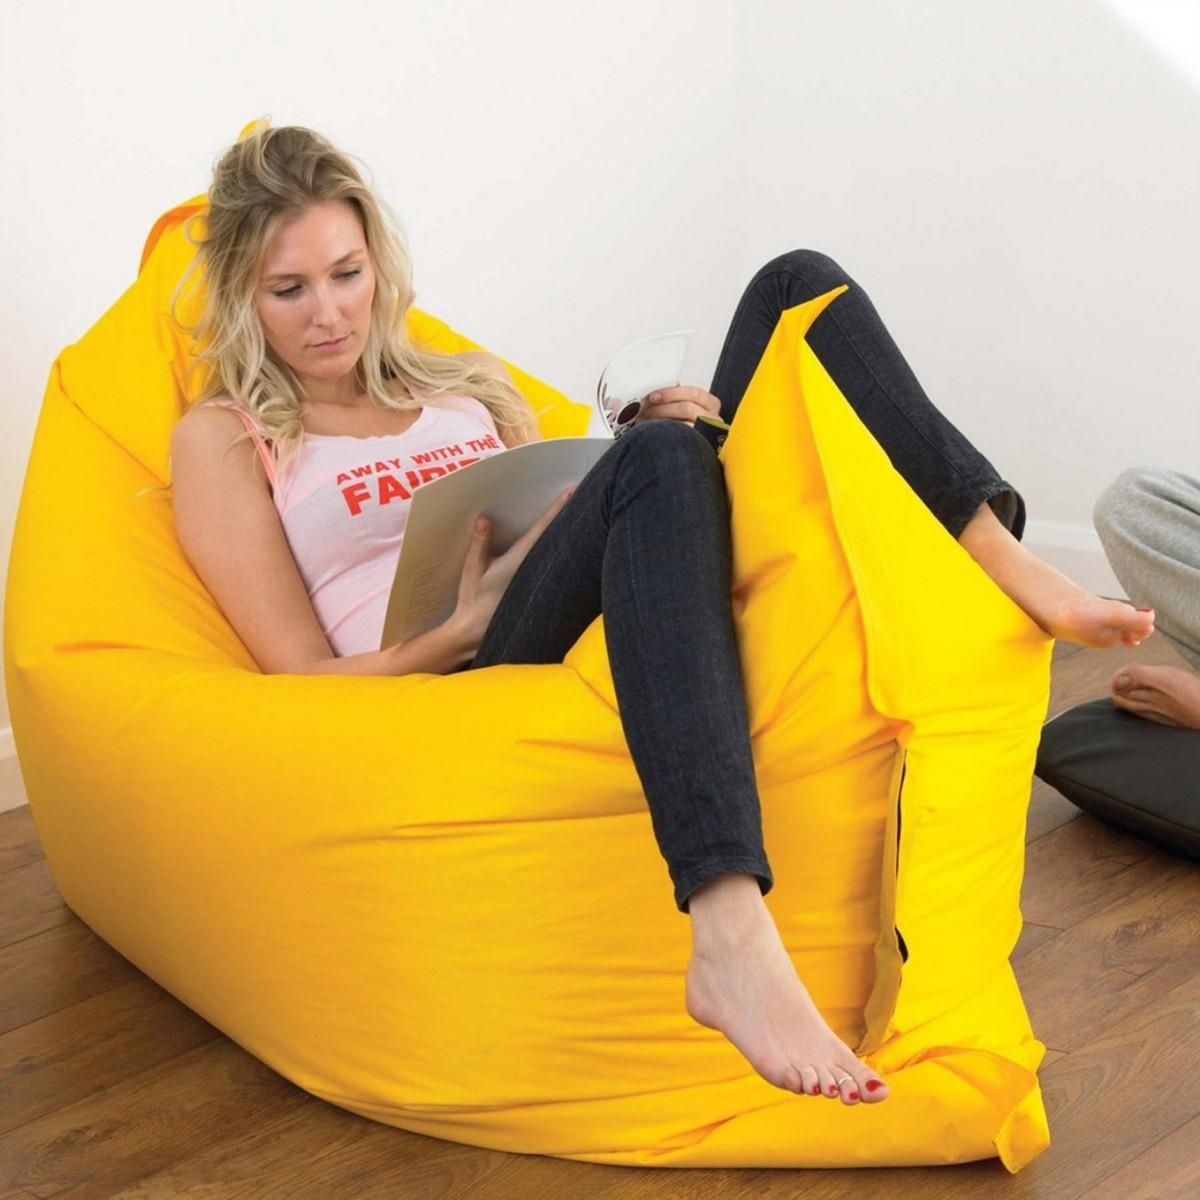 Making Giant Bean Bag Chair | Home Decorations Ideas Intended For Giant Bean Bag Chairs (View 16 of 20)